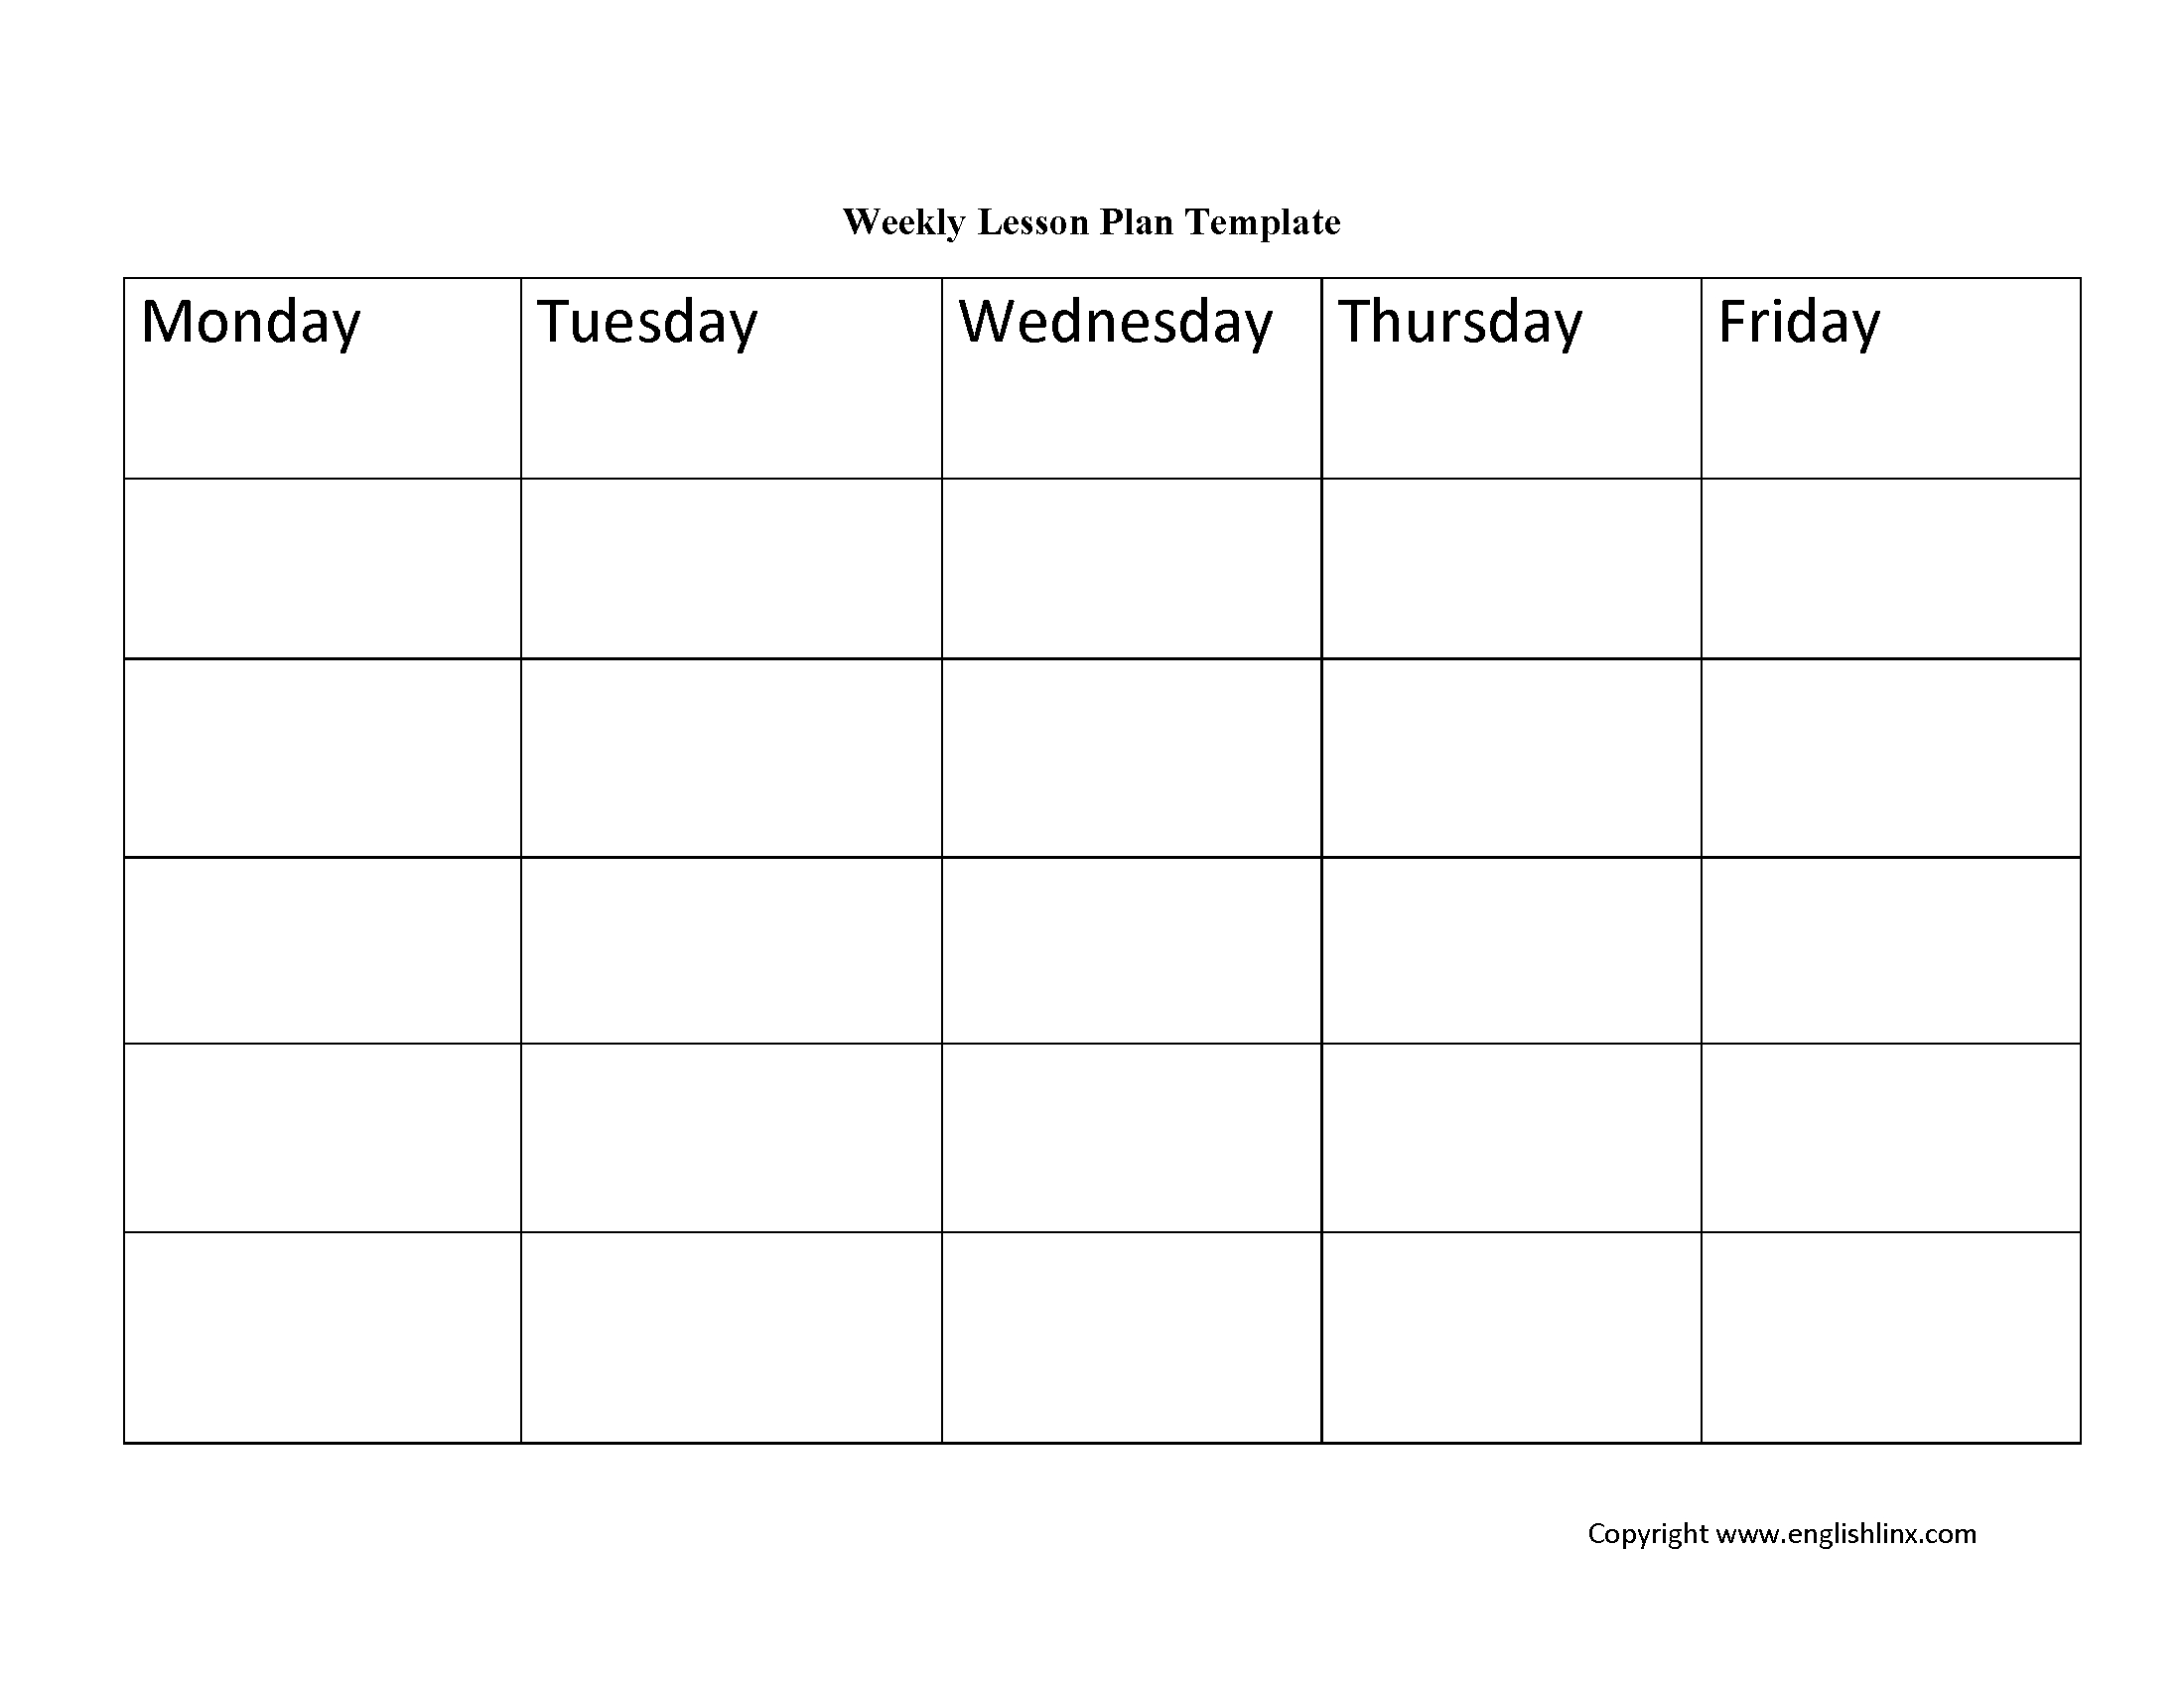 Englishlinx | Lesson Plan Template pertaining to Lesson Plan Template Printable Monthly